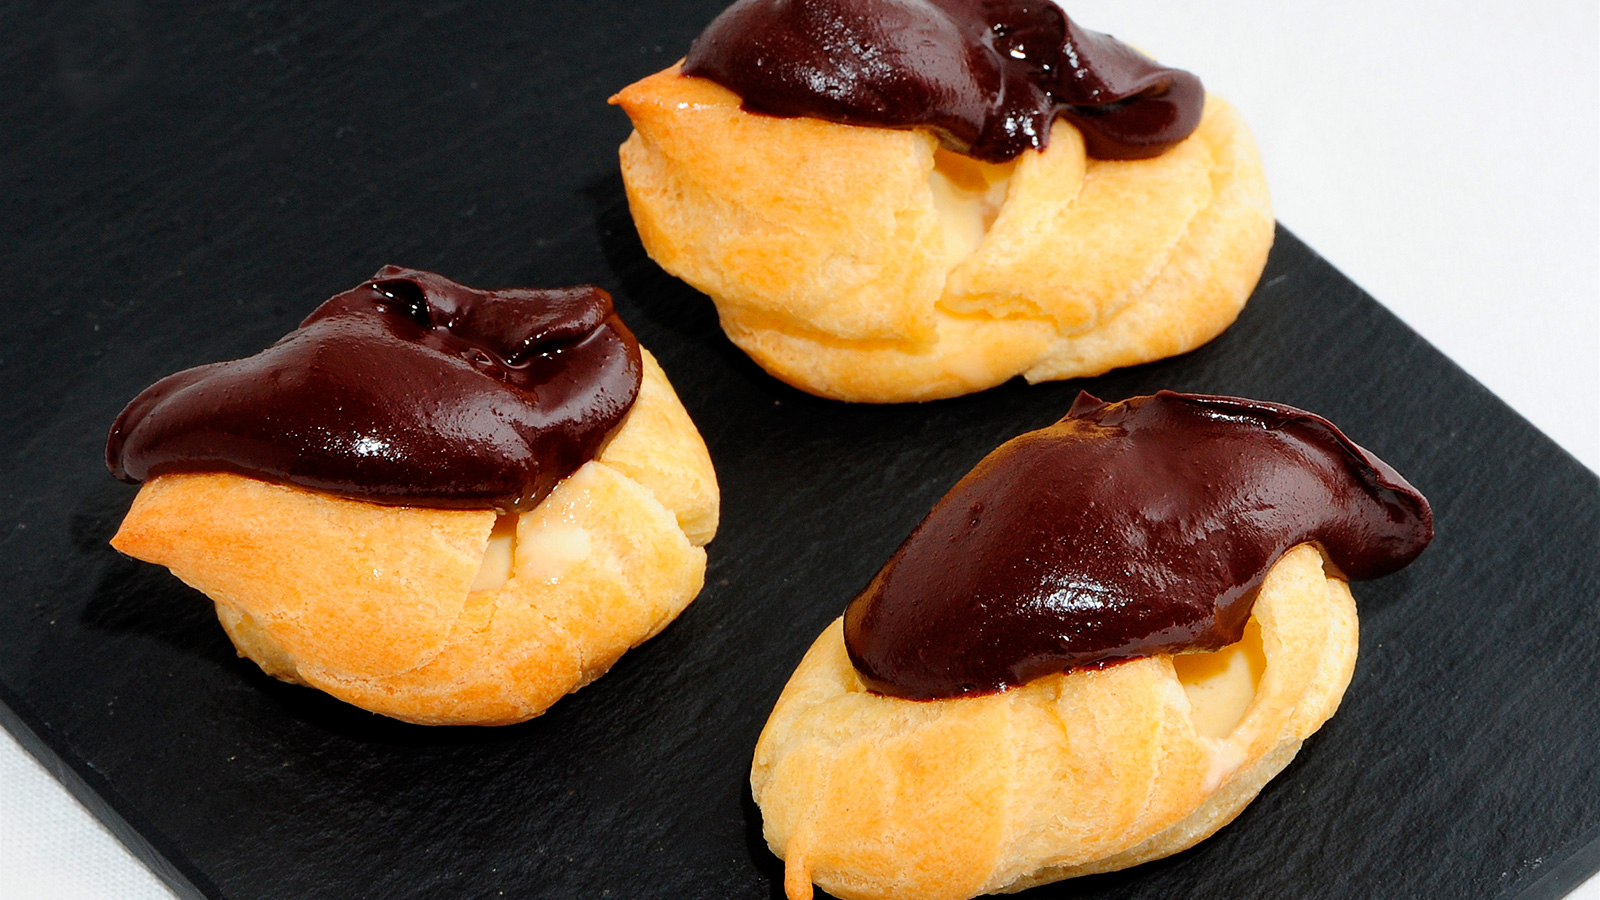 Profiteroles con chocolate evelyne ramelet receta for Cocina francesa